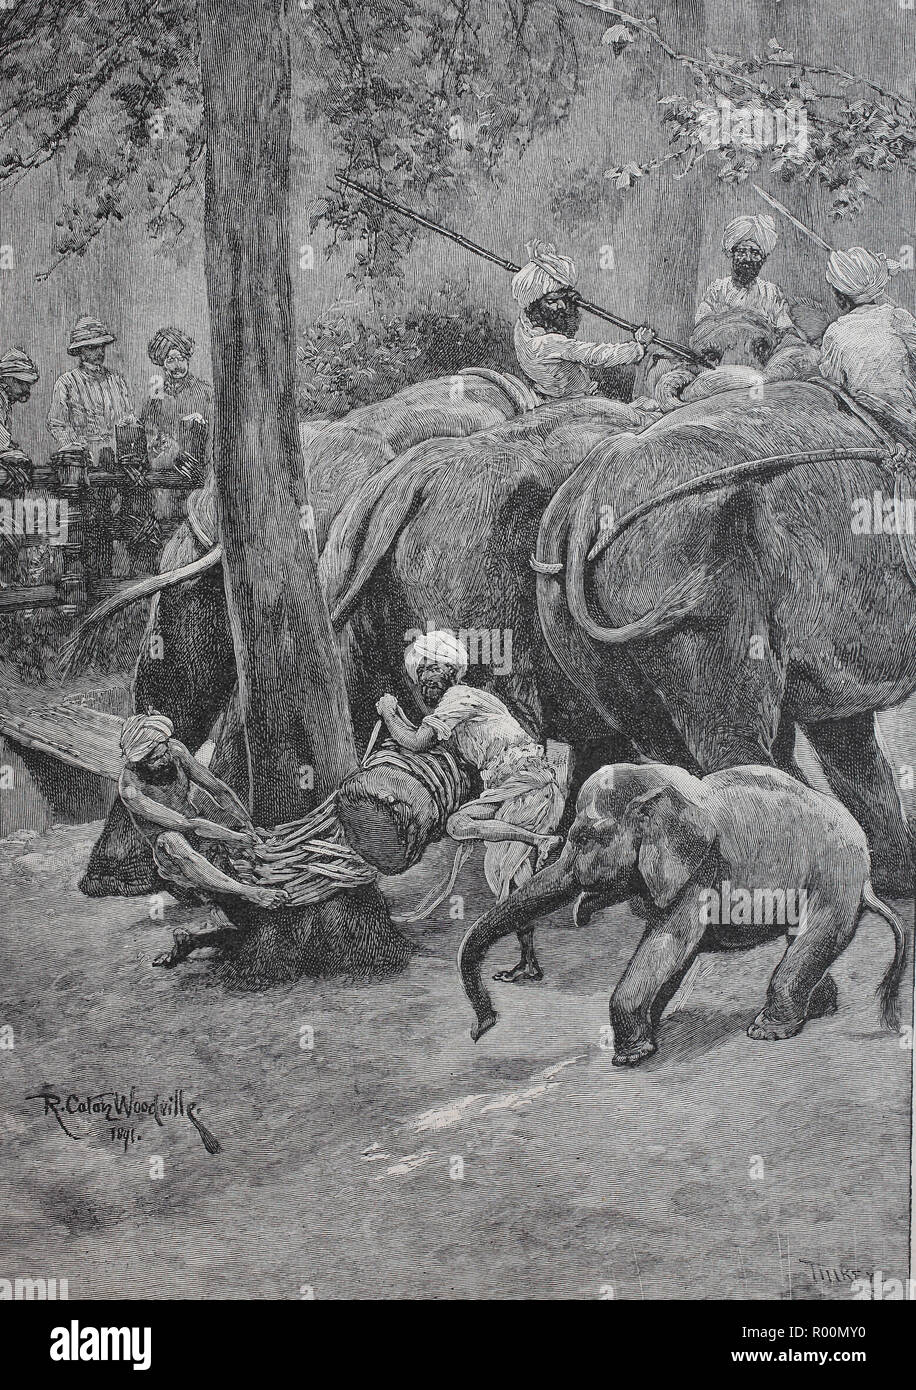 Digital improved reproduction, Bonding of a captive elephant in India, original print from the year 1899 - Stock Image